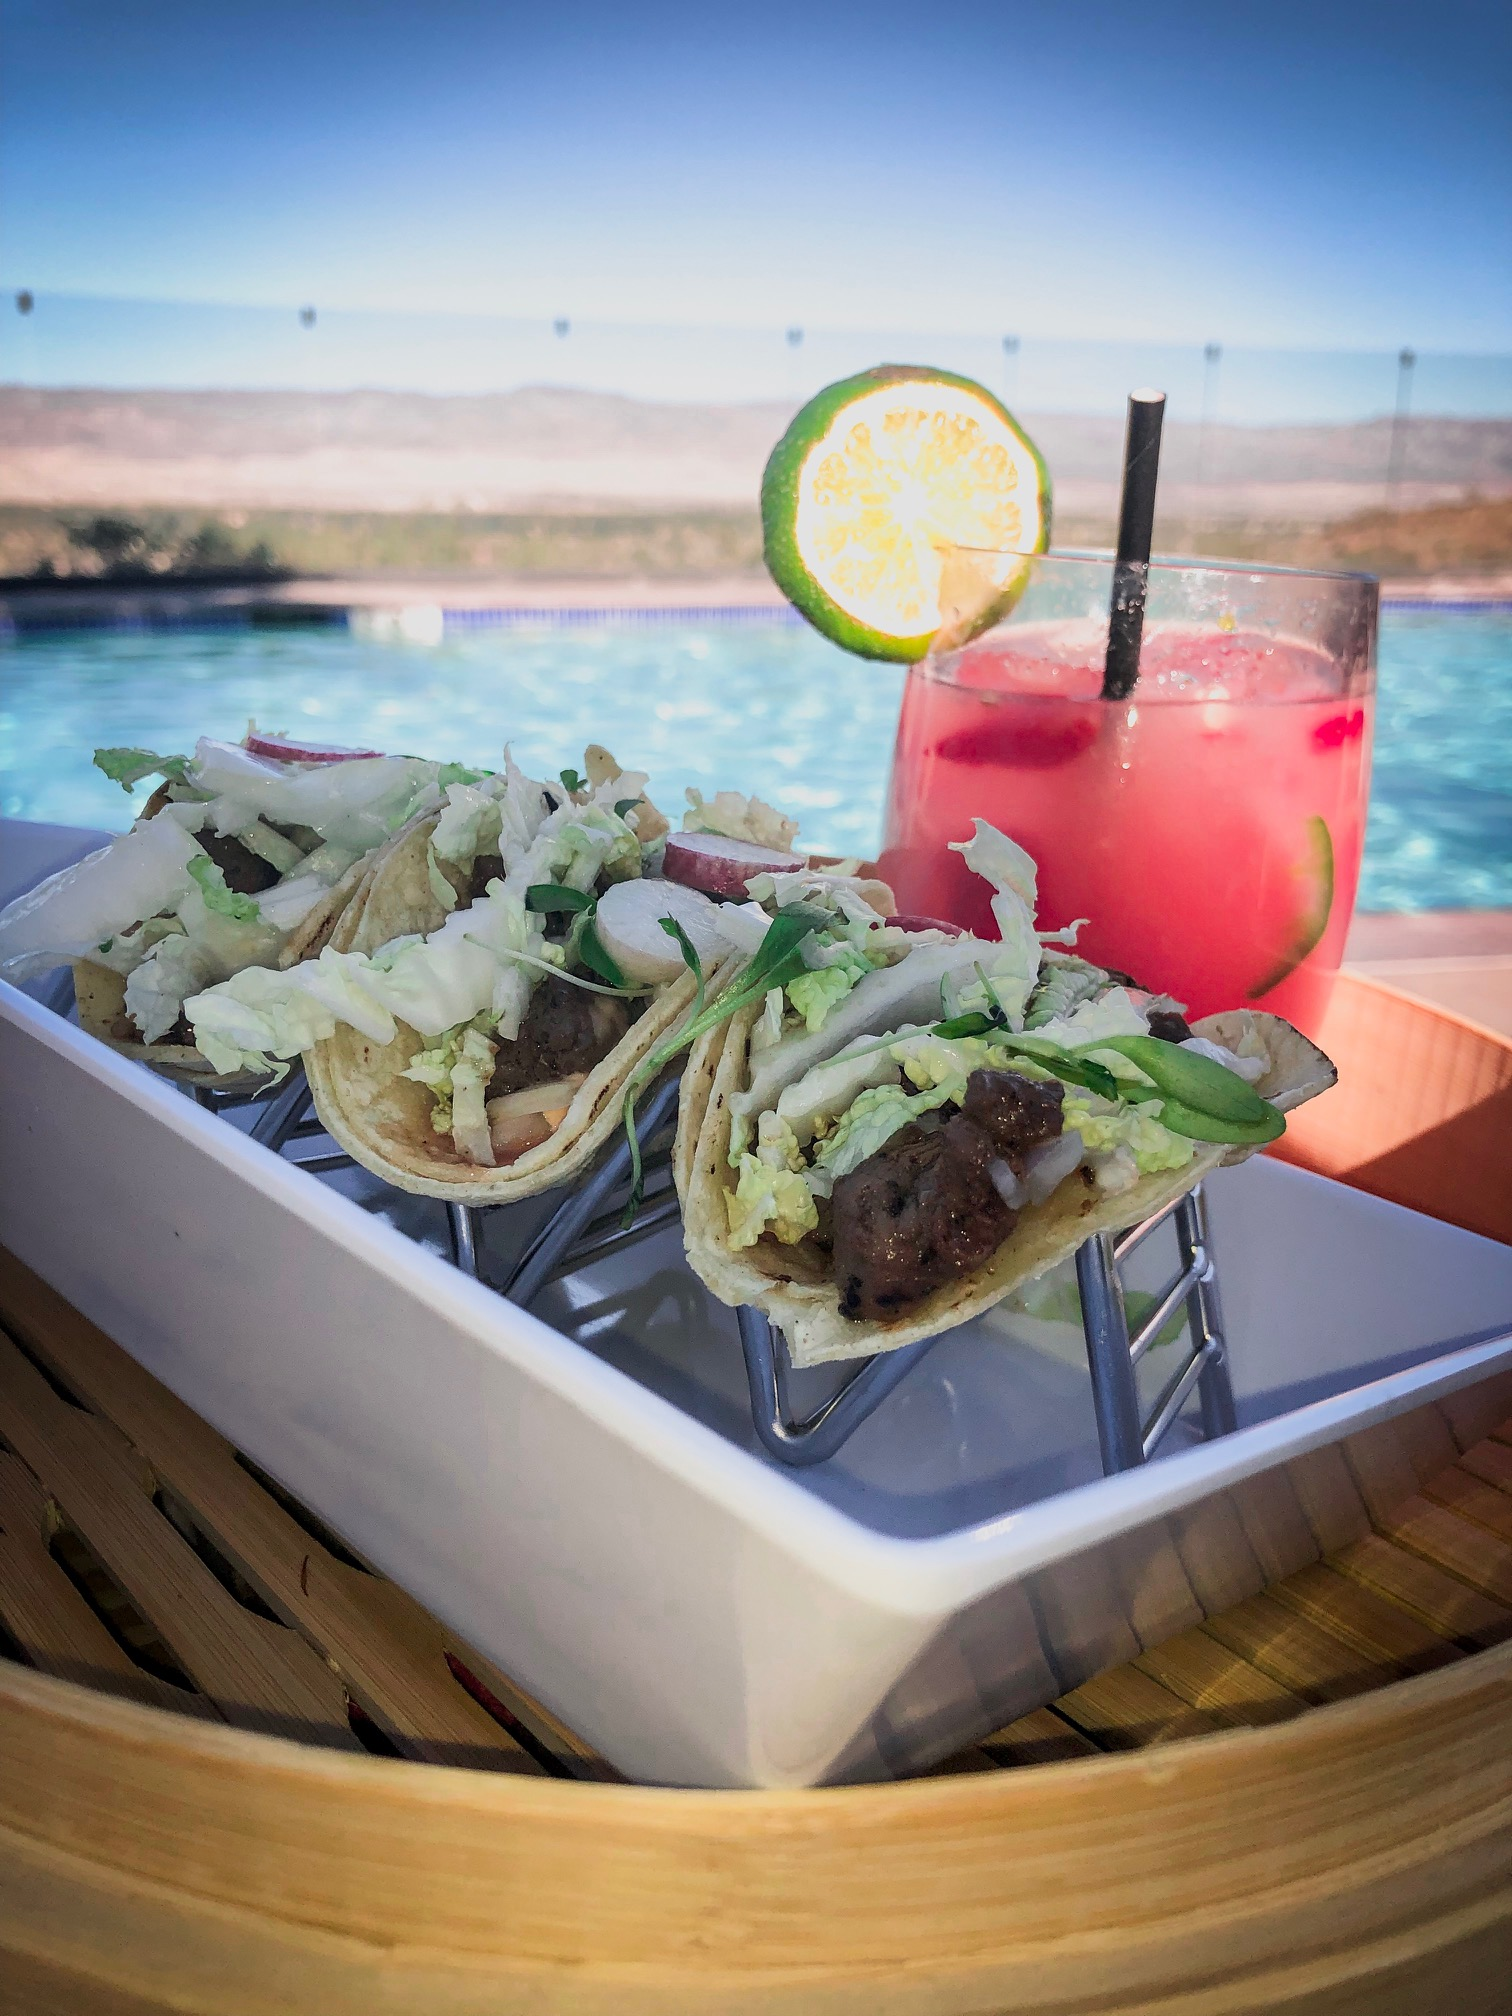 Poolside Carne Asada Tacos and Spicy Strawberry Margarita